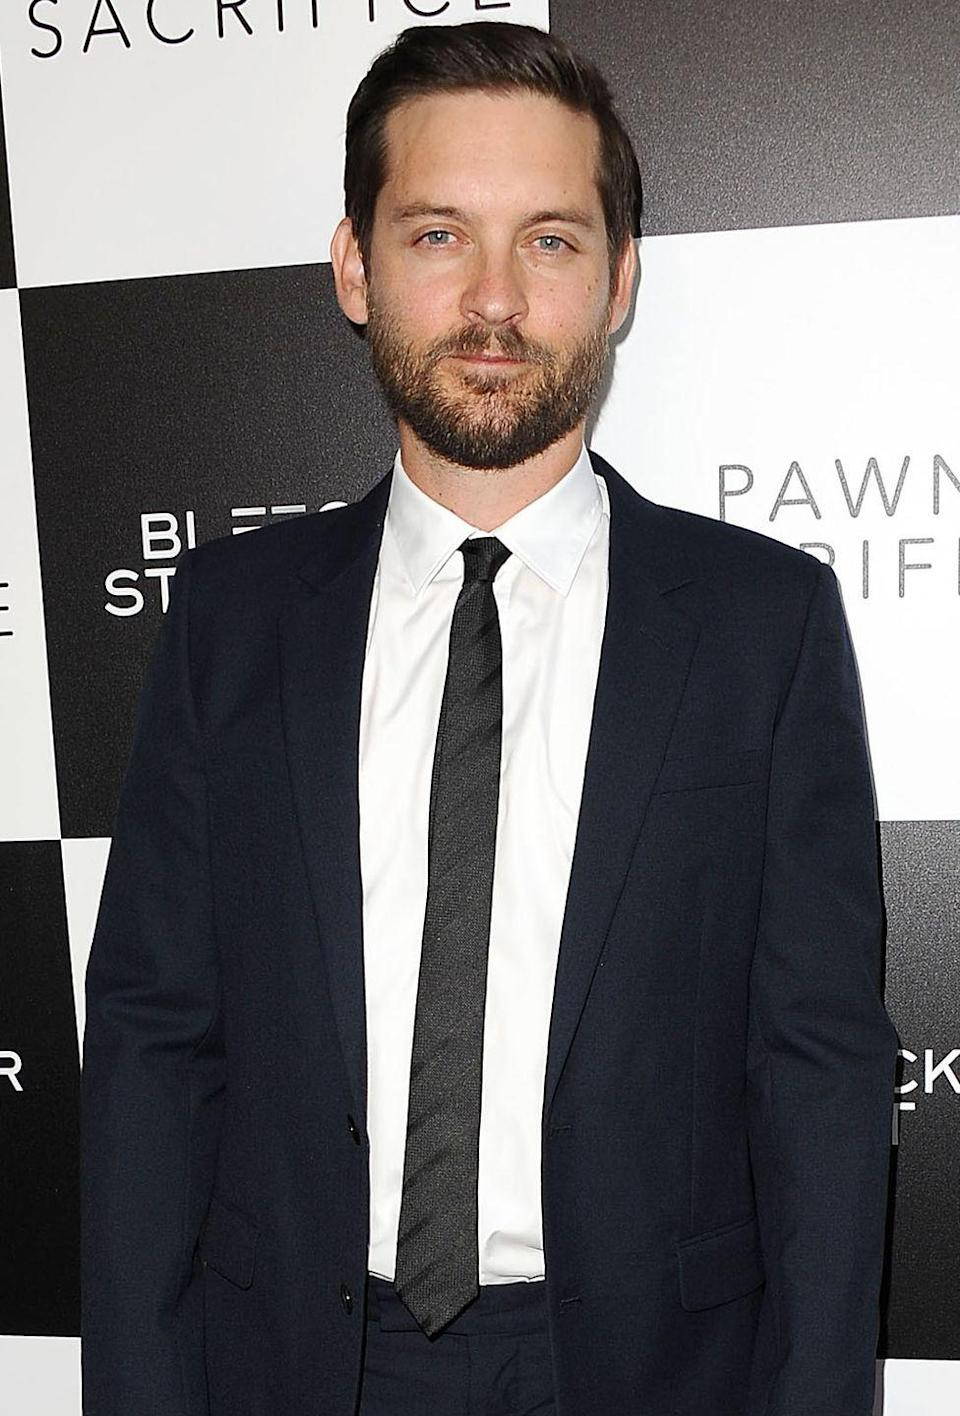 """<p>The Spiderman star has been open about his sobriety in many interviews, telling <a href=""""https://www.theguardian.com/film/2013/may/11/tobey-maguire-interview"""" rel=""""nofollow noopener"""" target=""""_blank"""" data-ylk=""""slk:The Guardian"""" class=""""link rapid-noclick-resp"""">The Guardian</a>: 'I stopped consuming any mind-altering substances when I was 19 years old. And I've been abstinent since then.'</p>"""